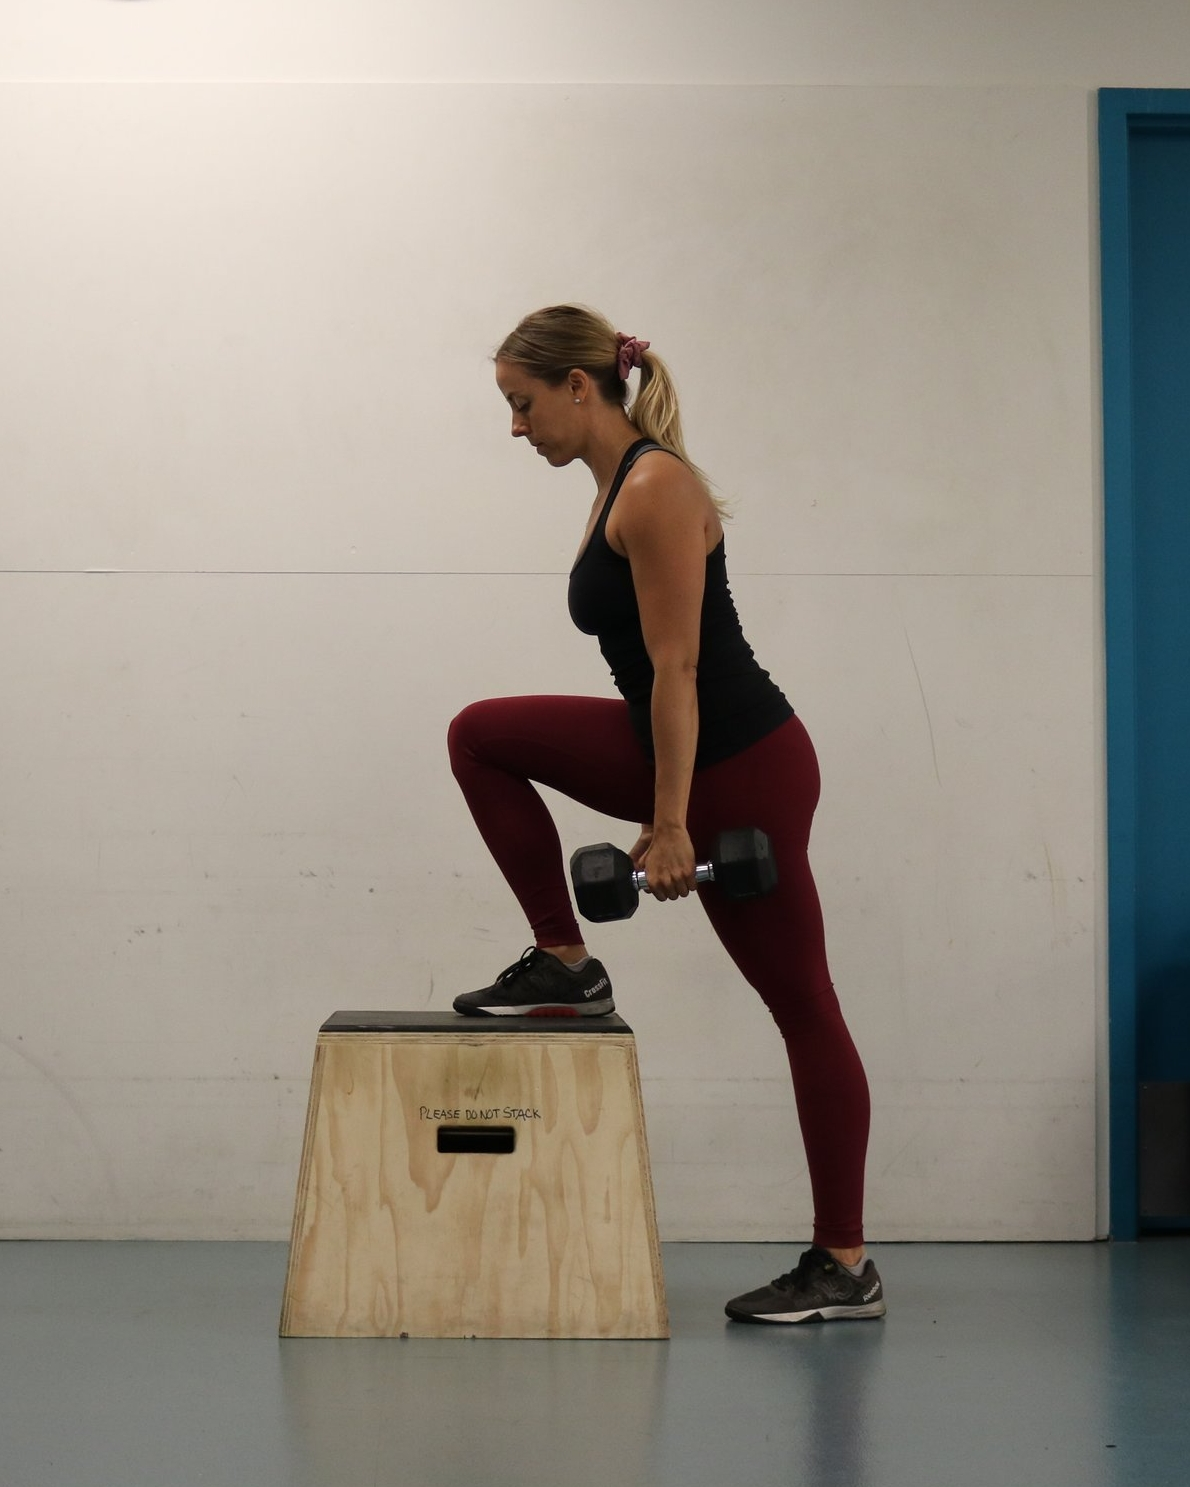 Start position of the step-up